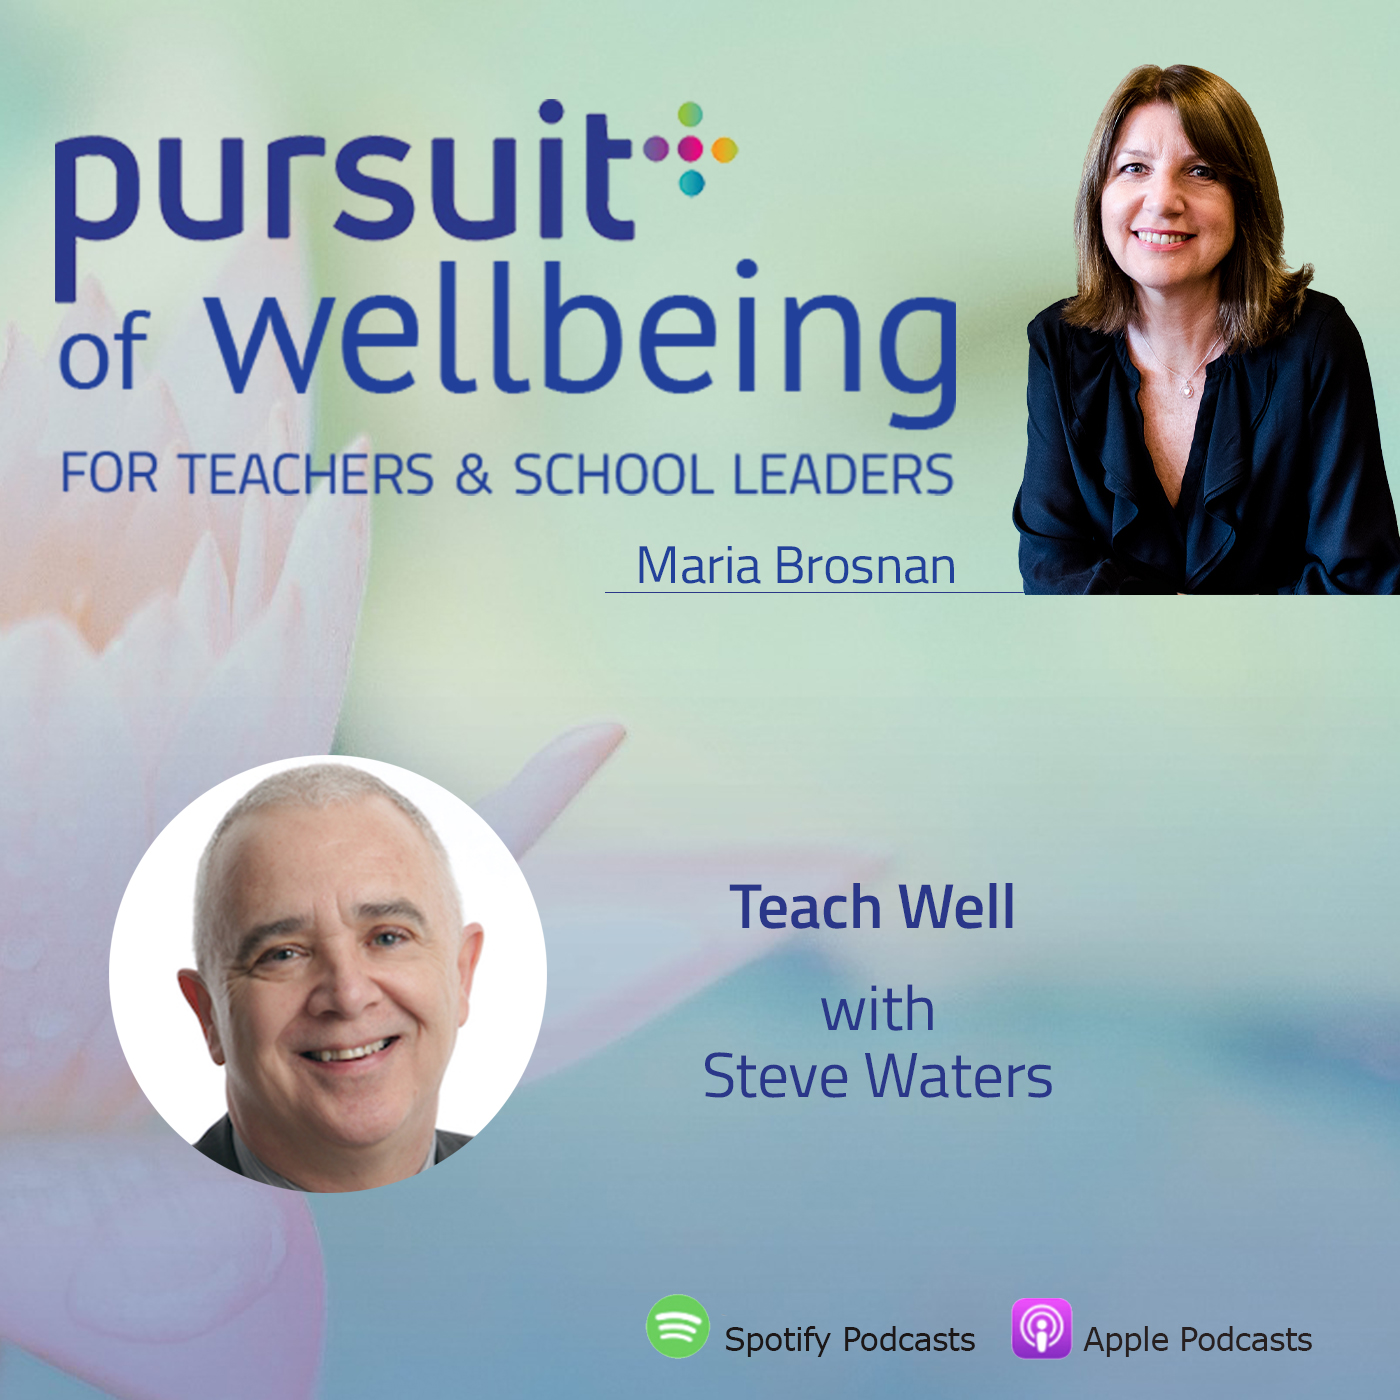 Teach Well with Steve Waters